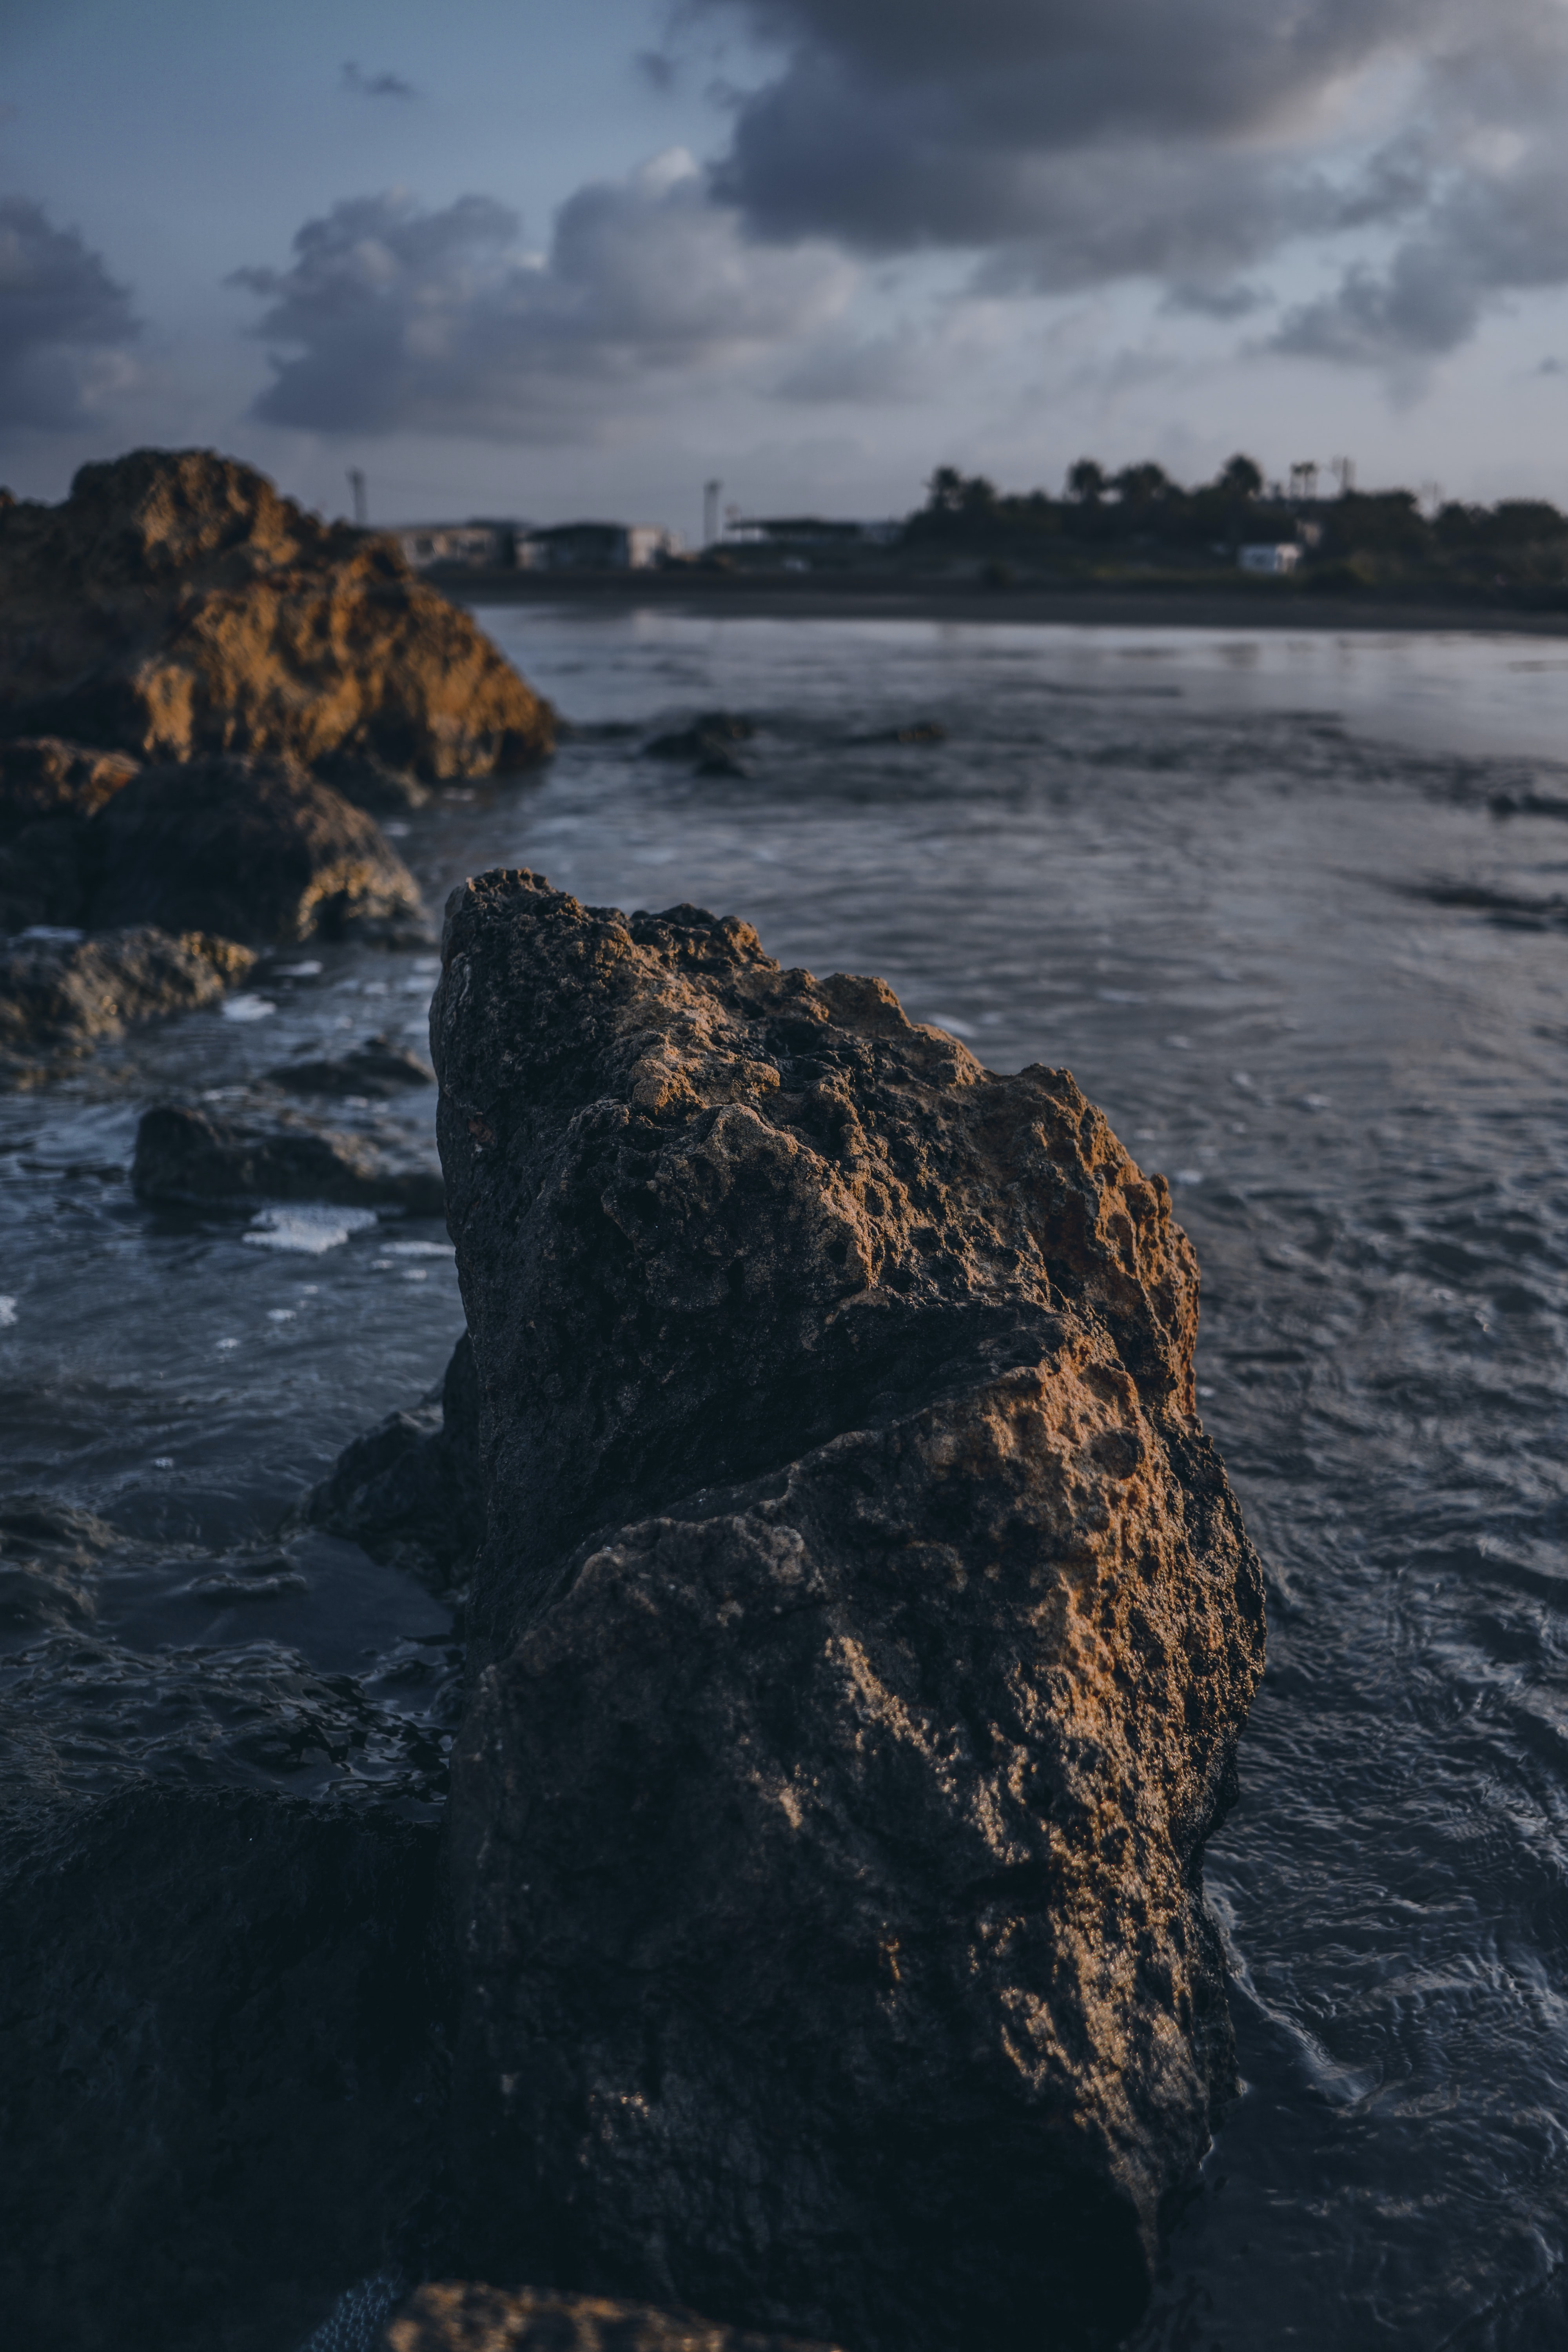 selective-focus photography of rock formation by body of water during daytime